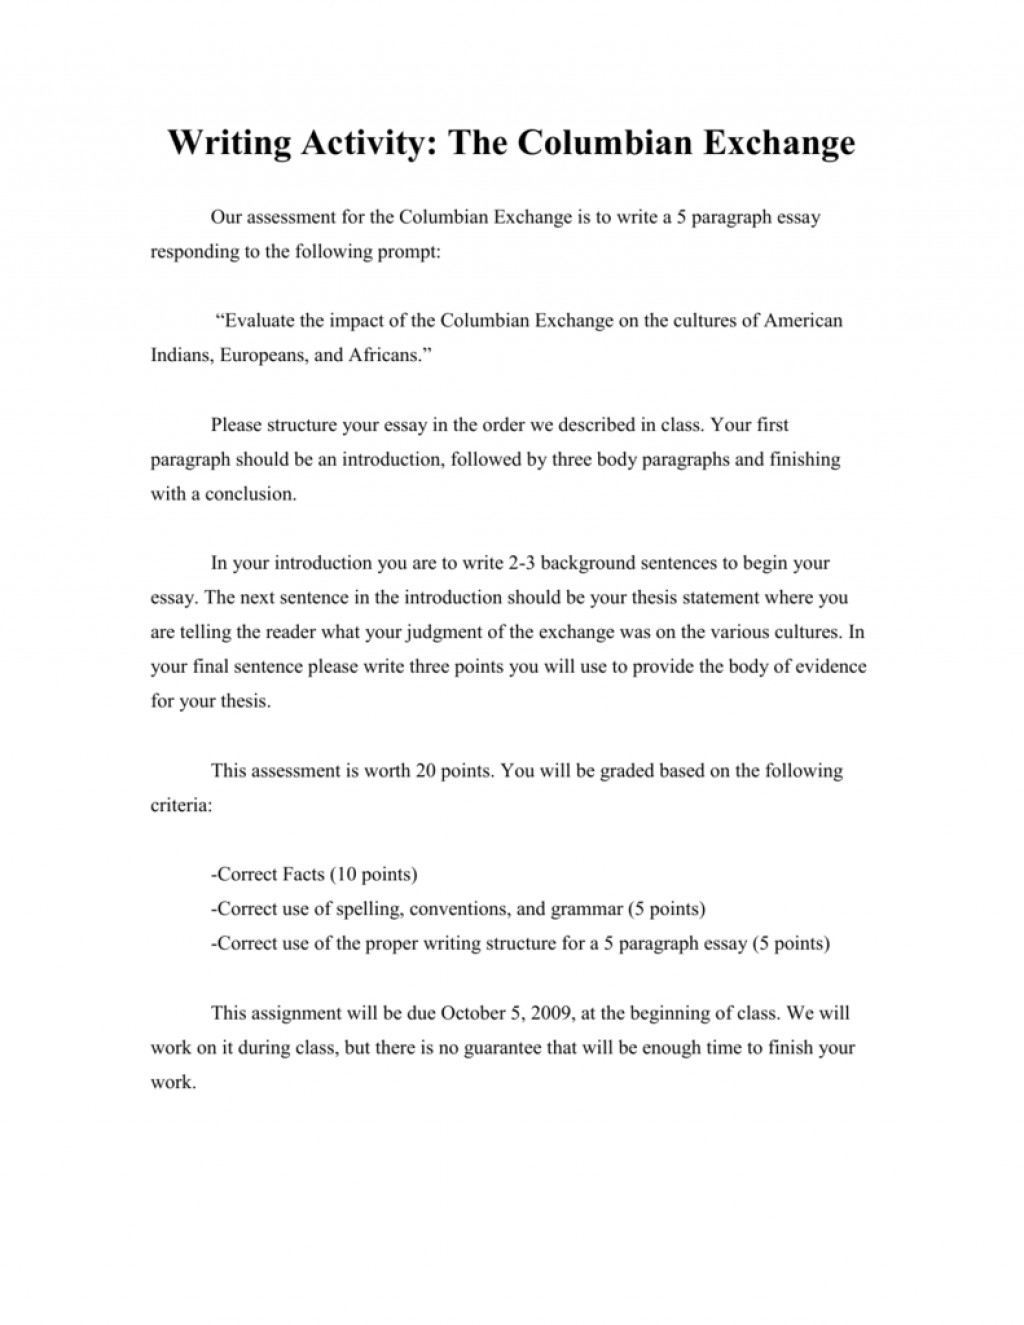 024 Columbian Exchange Essay Uncategorized Question Outline Conclusion Research20 Research Paper Liberty Frightening University Large